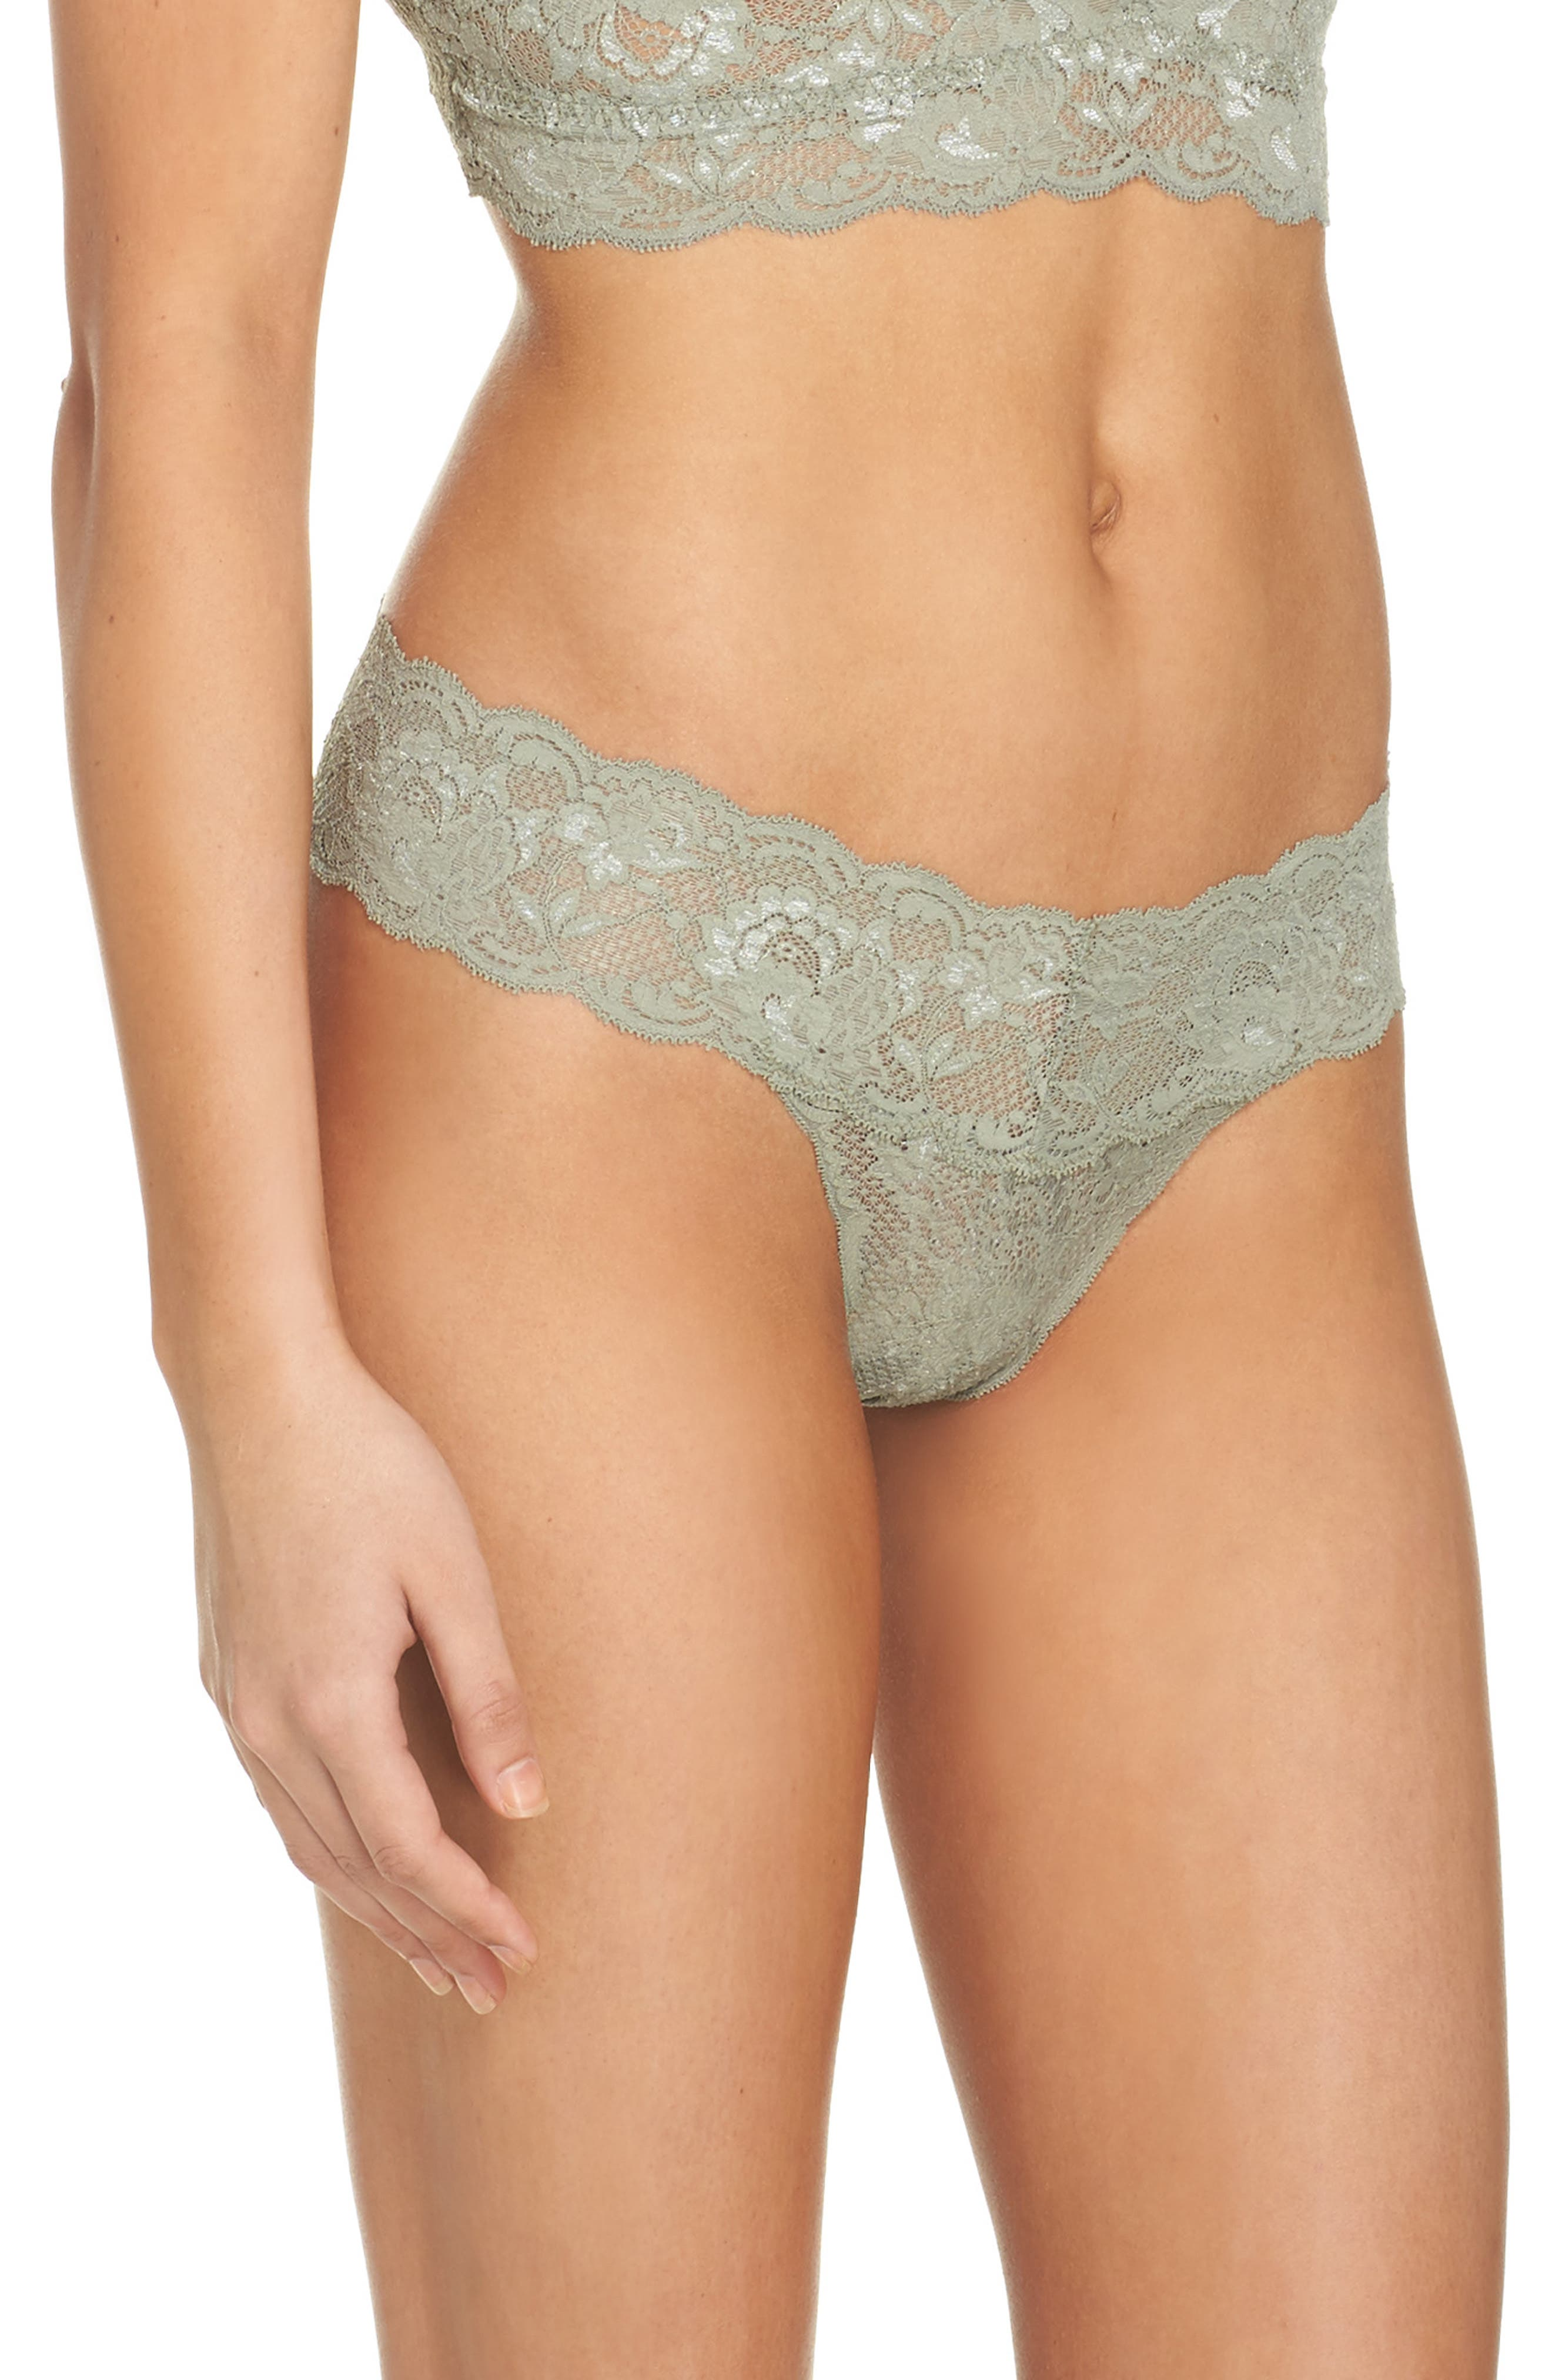 'Never Say Never Cutie' Thong,                             Alternate thumbnail 251, color,